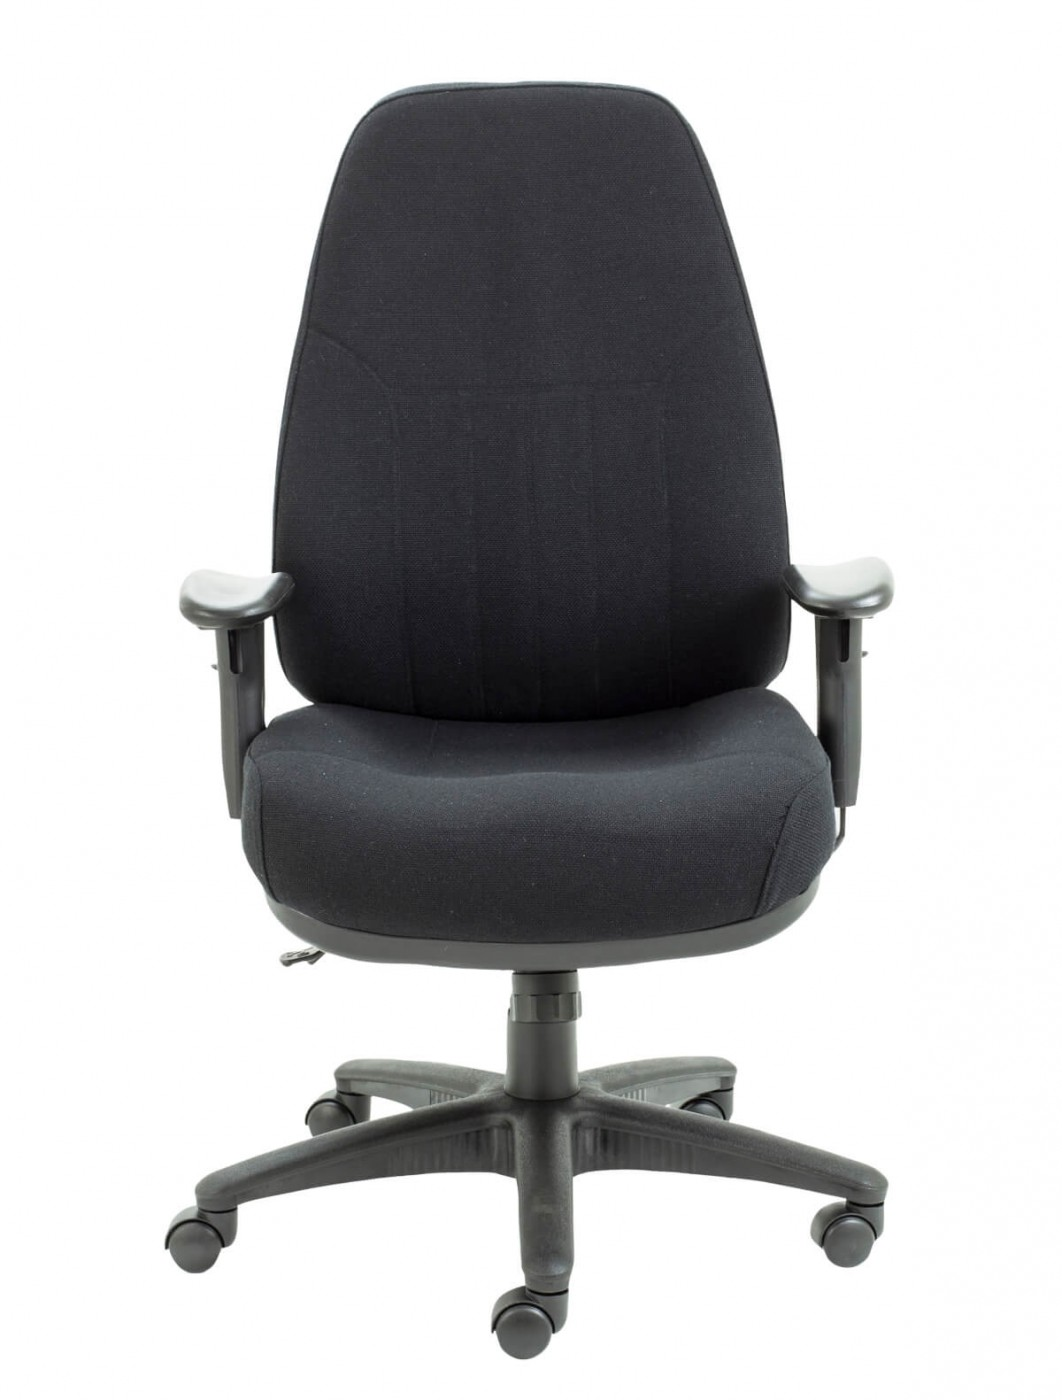 Cloth Covered Office Chairs Office Chairs Panther 24 Hour Fabric Office Chair